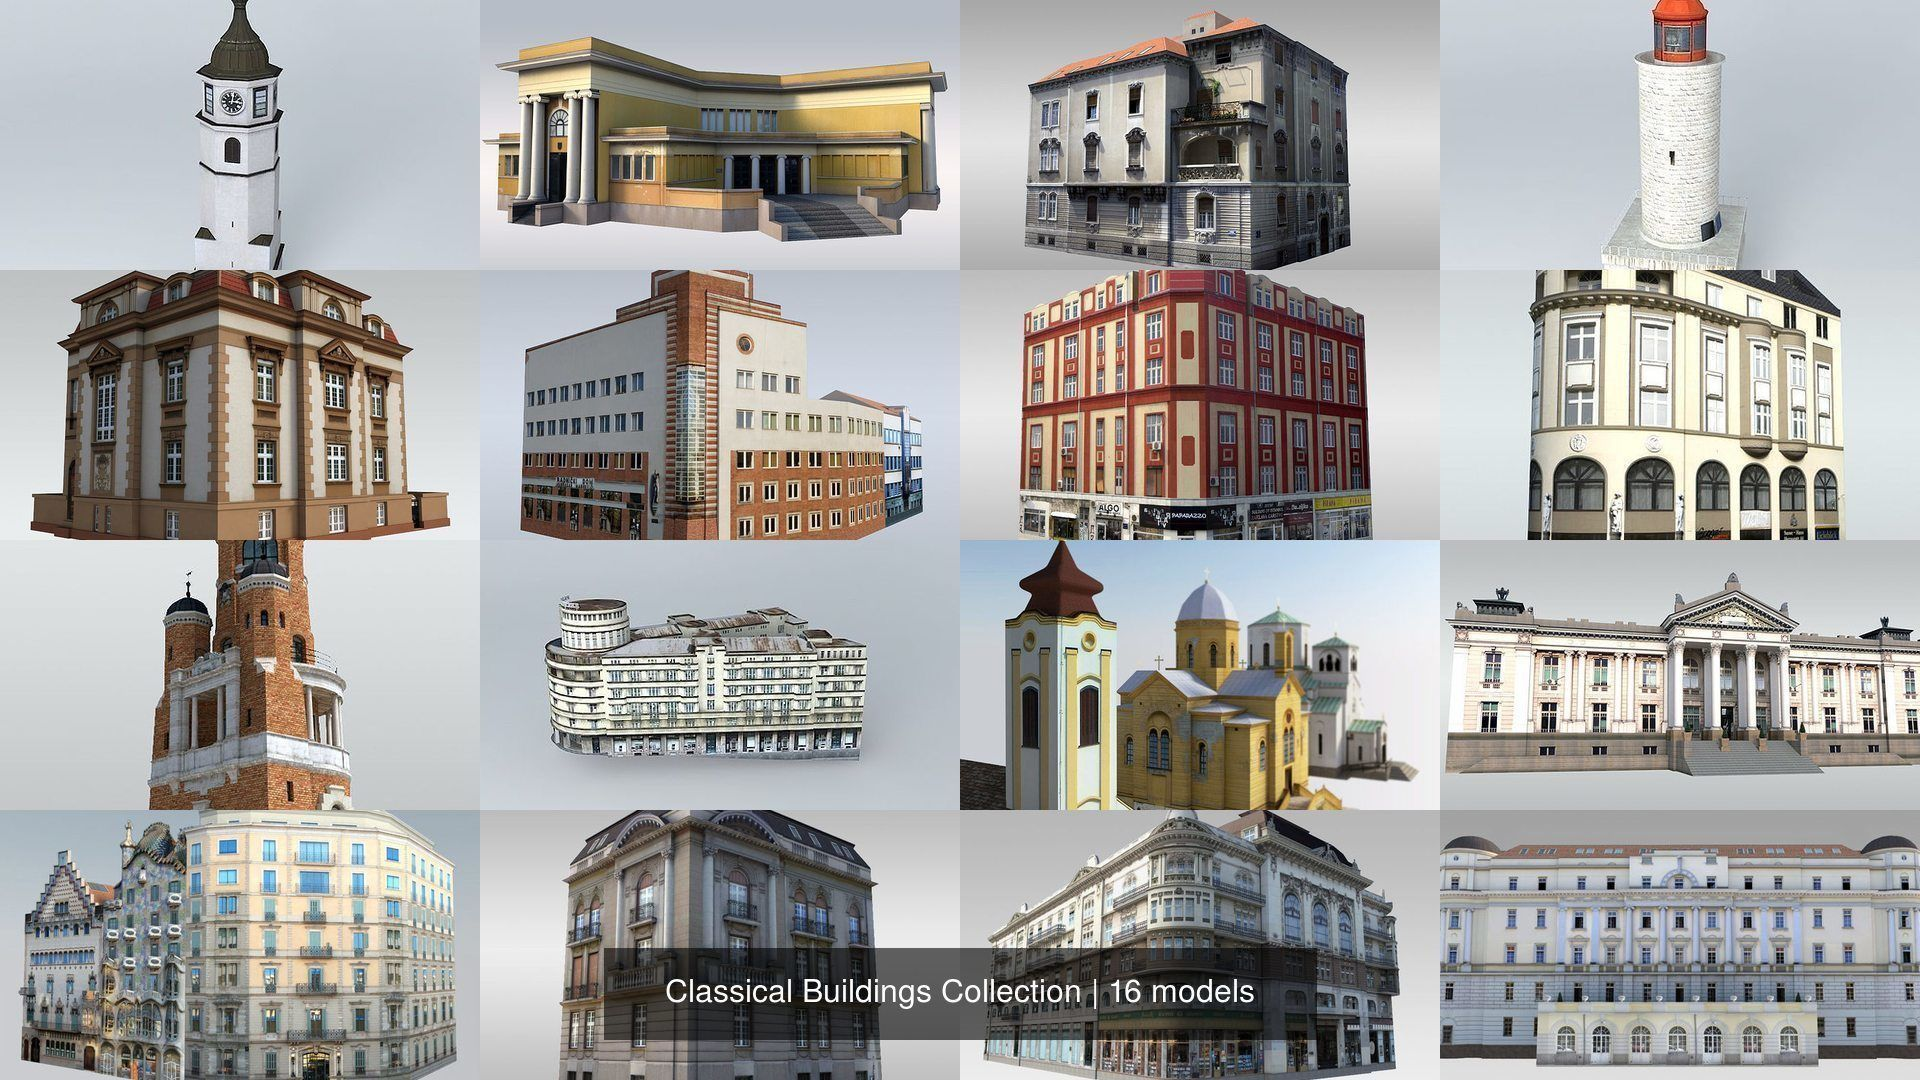 Classical Buildings Collection